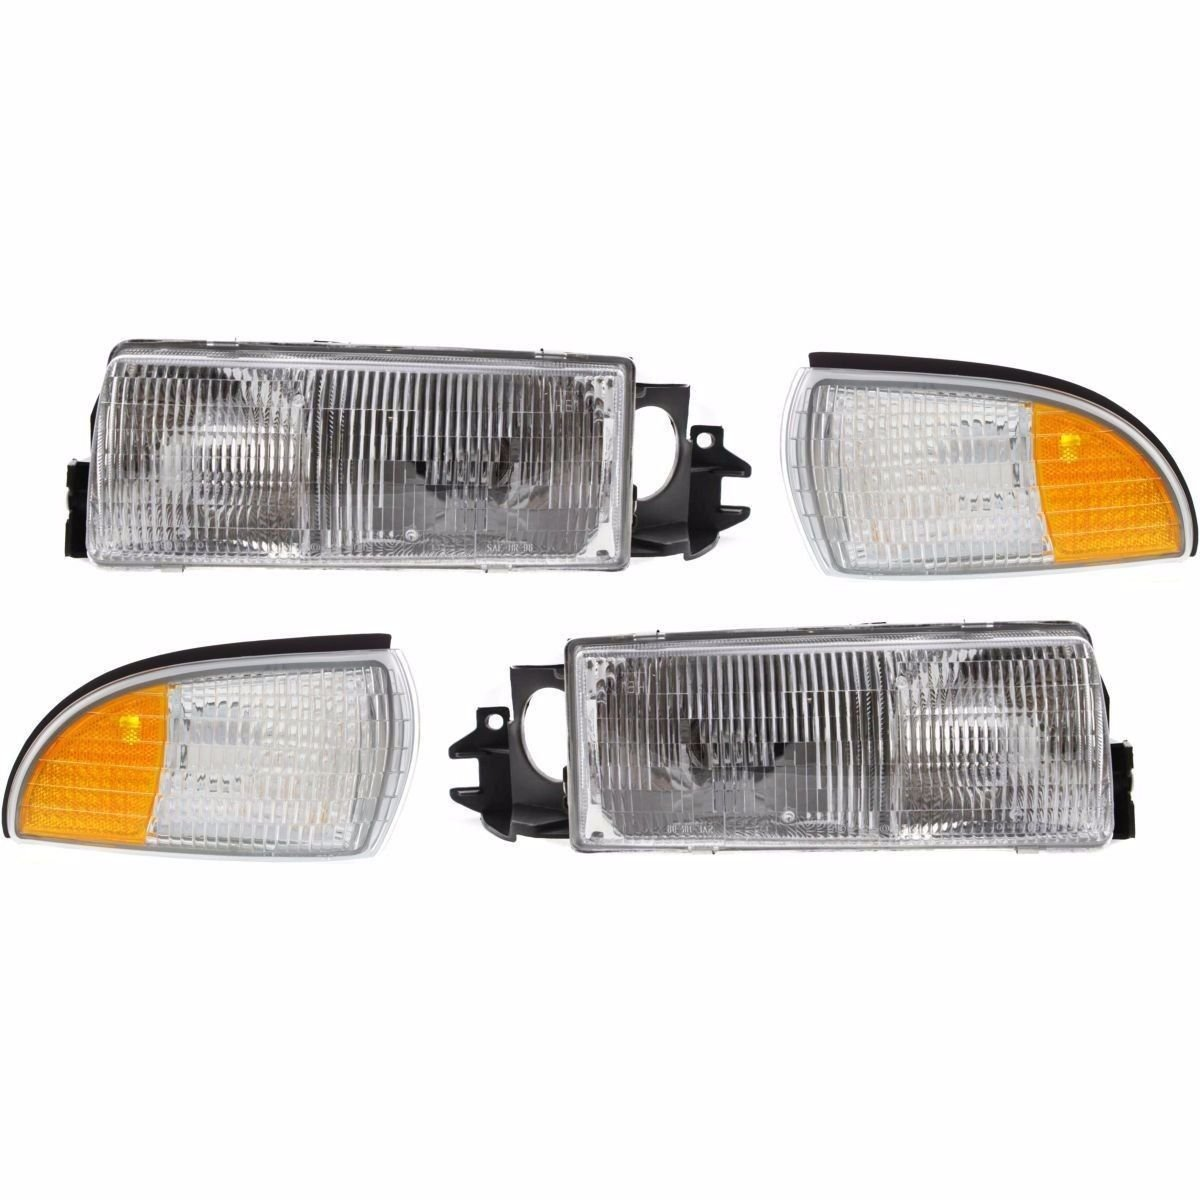 Georgie Boy Landau 1999-2005 RV Motorhome Pair (Left & Right) Replacement Front Headlights with Corner Lamps 4PC Set by BuyRVlights (Image #2)